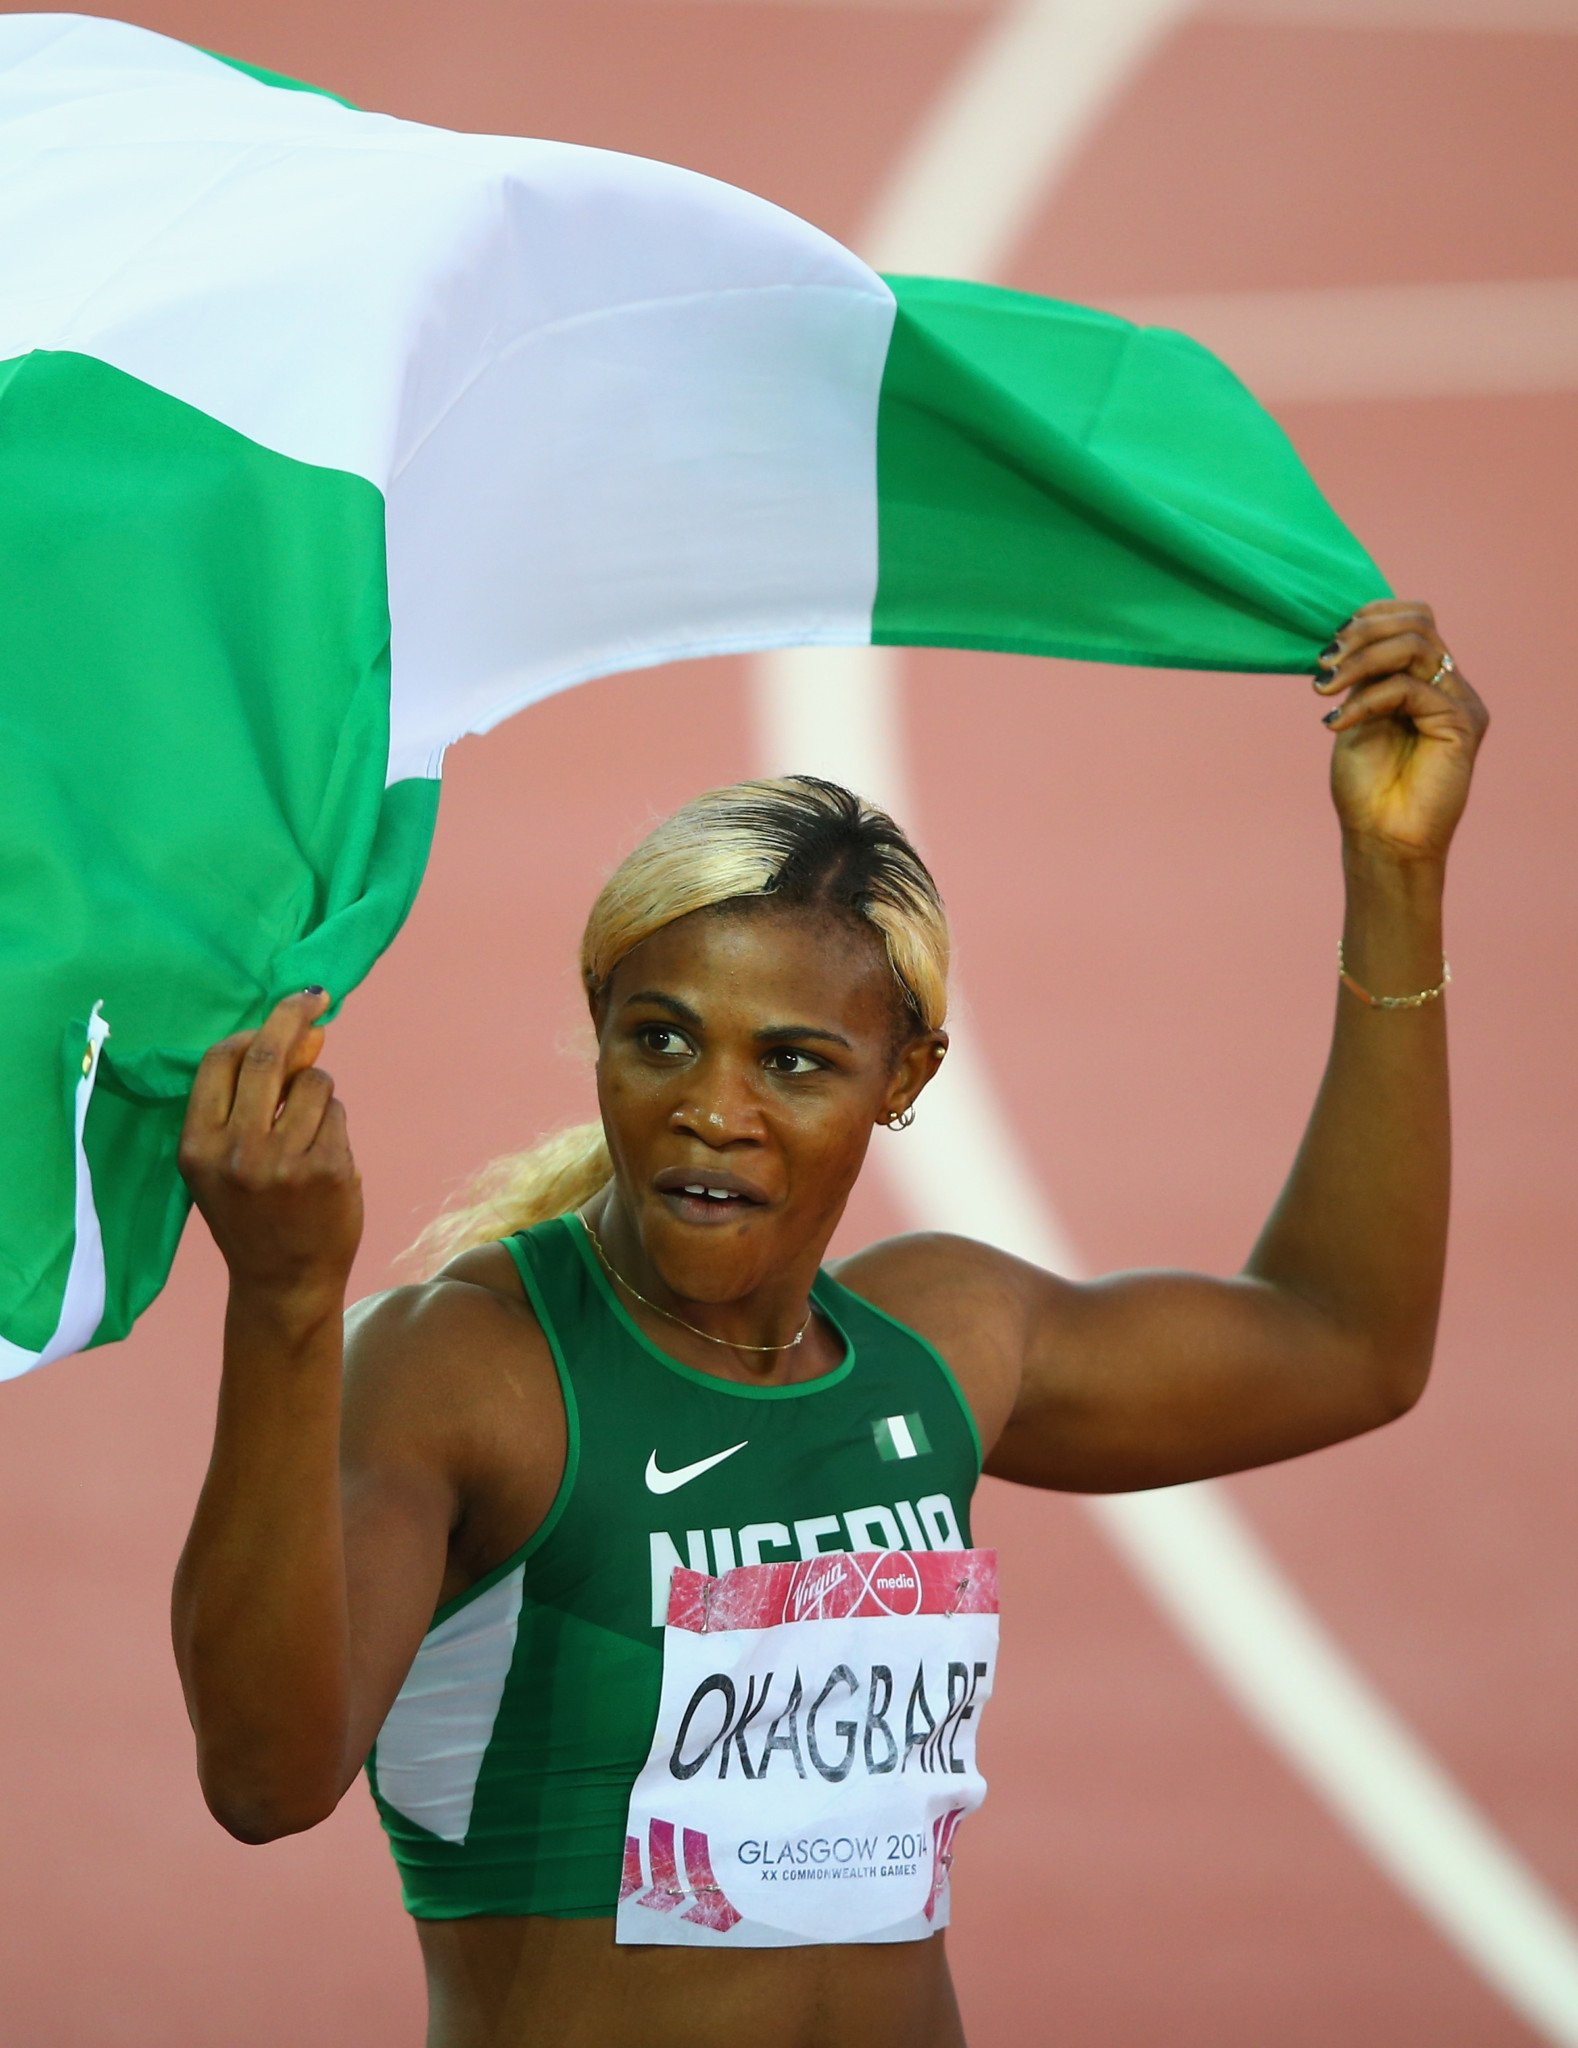 AFN Lists Okagbare, Oduduru, 49 Others For 12th All Africa Games